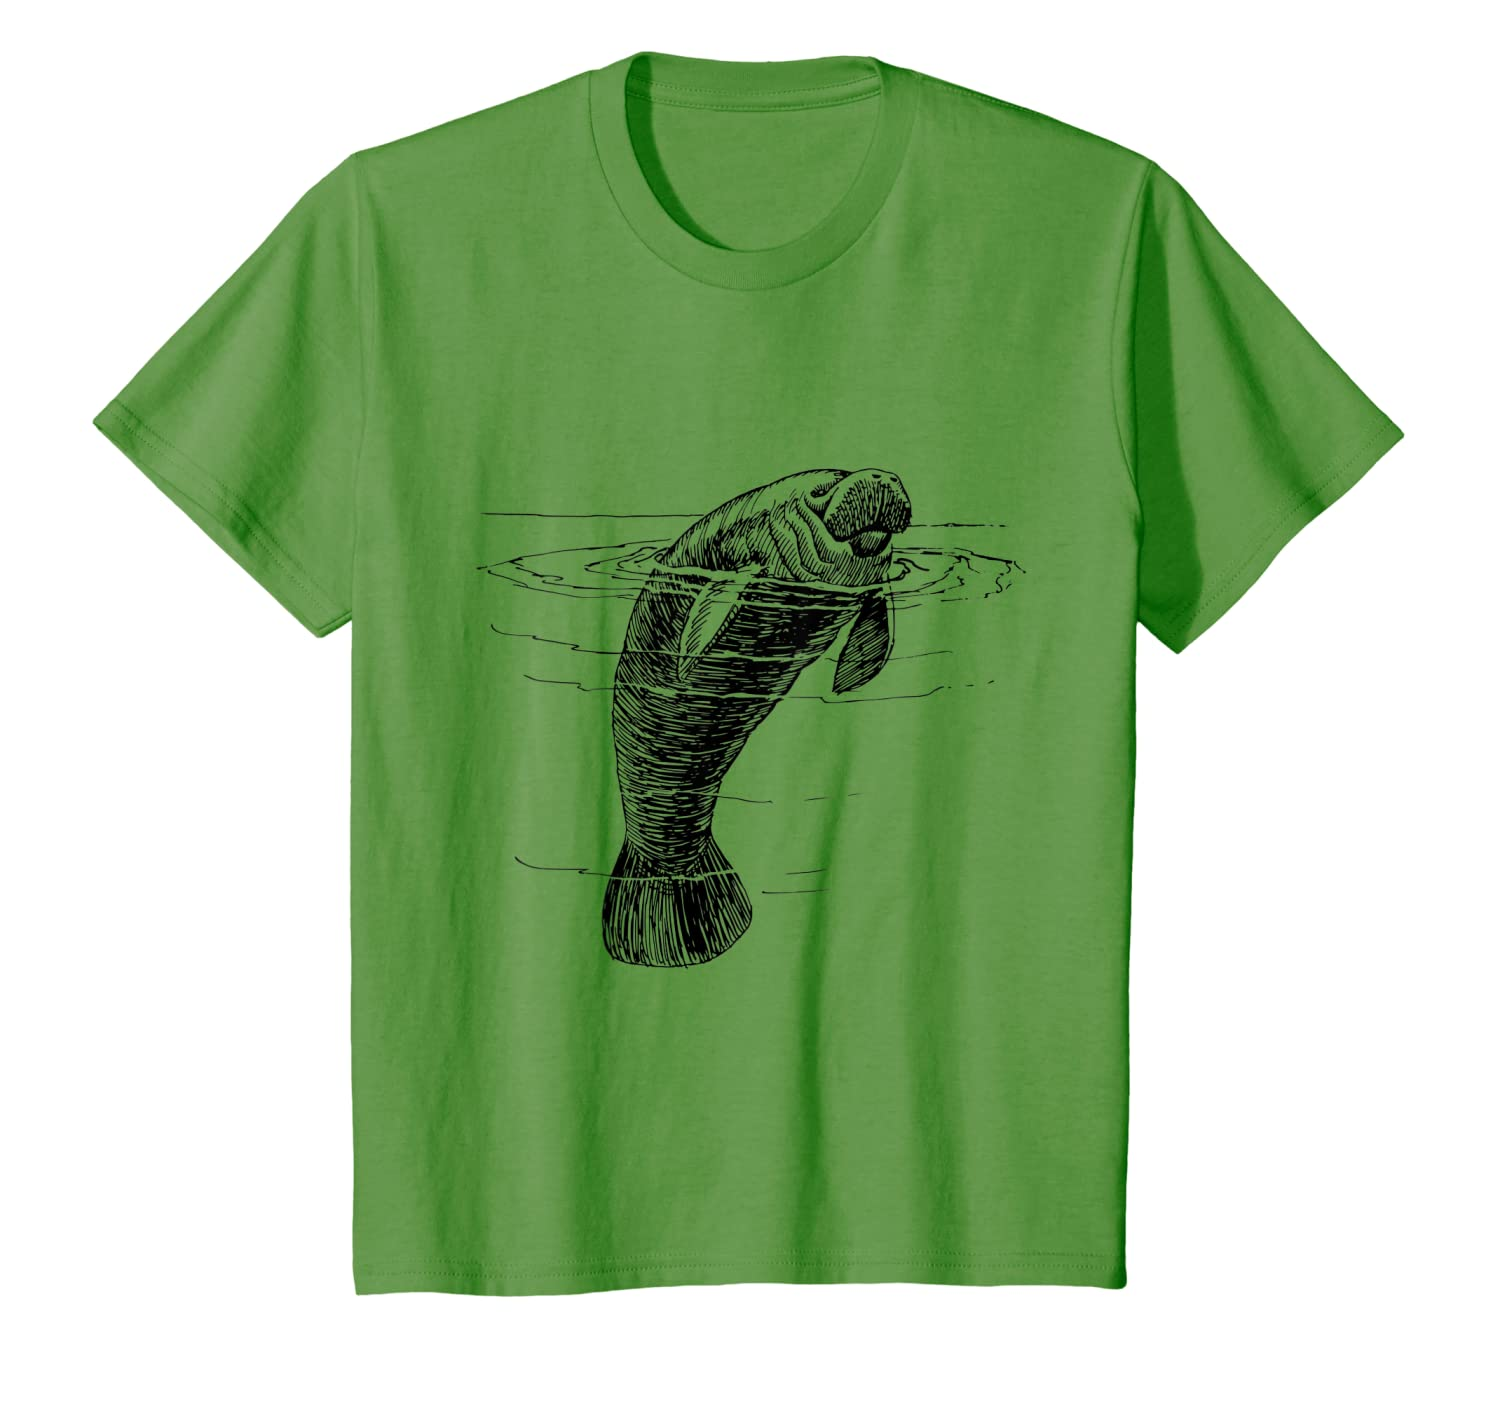 77b250f3c0f6 Amazon.com: Manatee Shirt Florida Spring Manatees Souvenir T-Shirt: Clothing